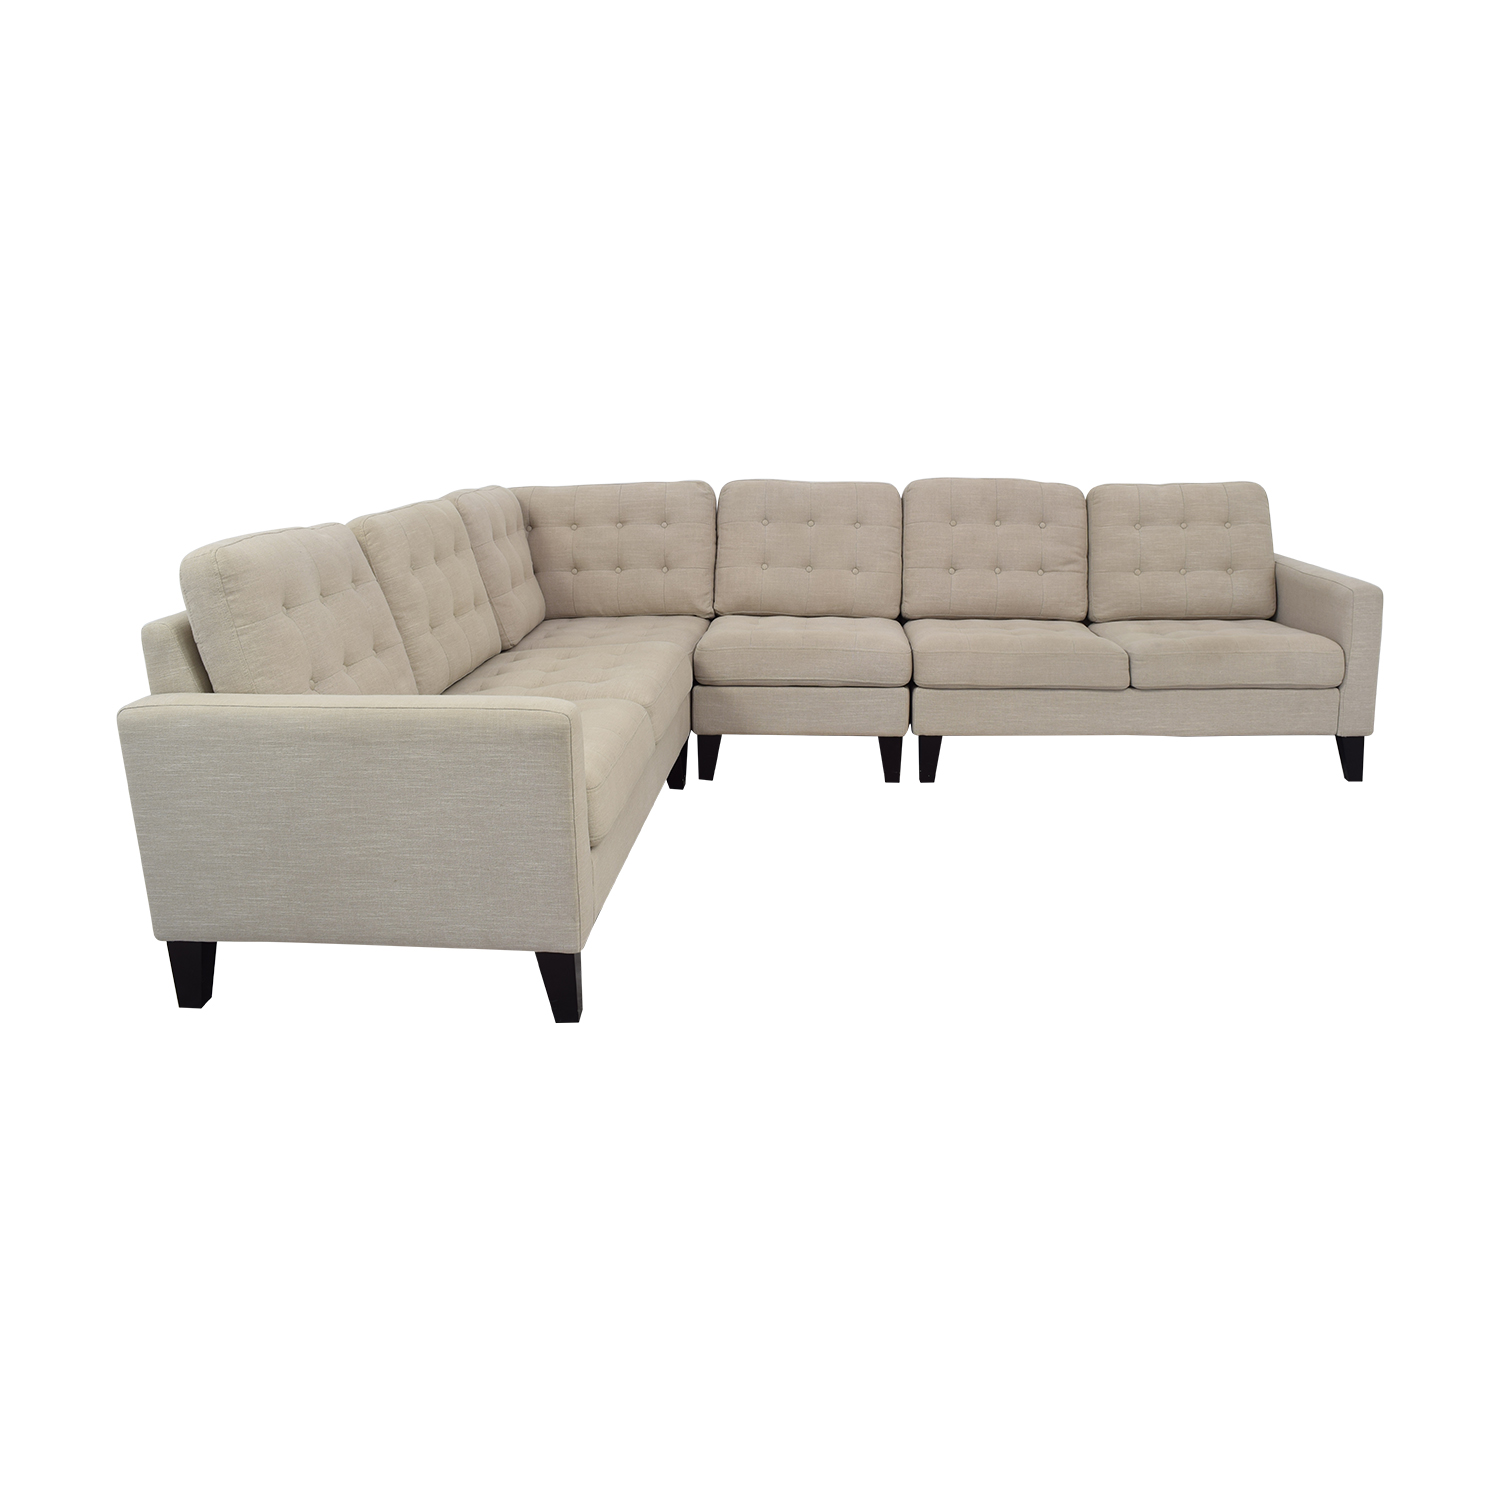 buy Pier 1 Nyle L-Shaped Sectional Sofa Pier 1 Sofas